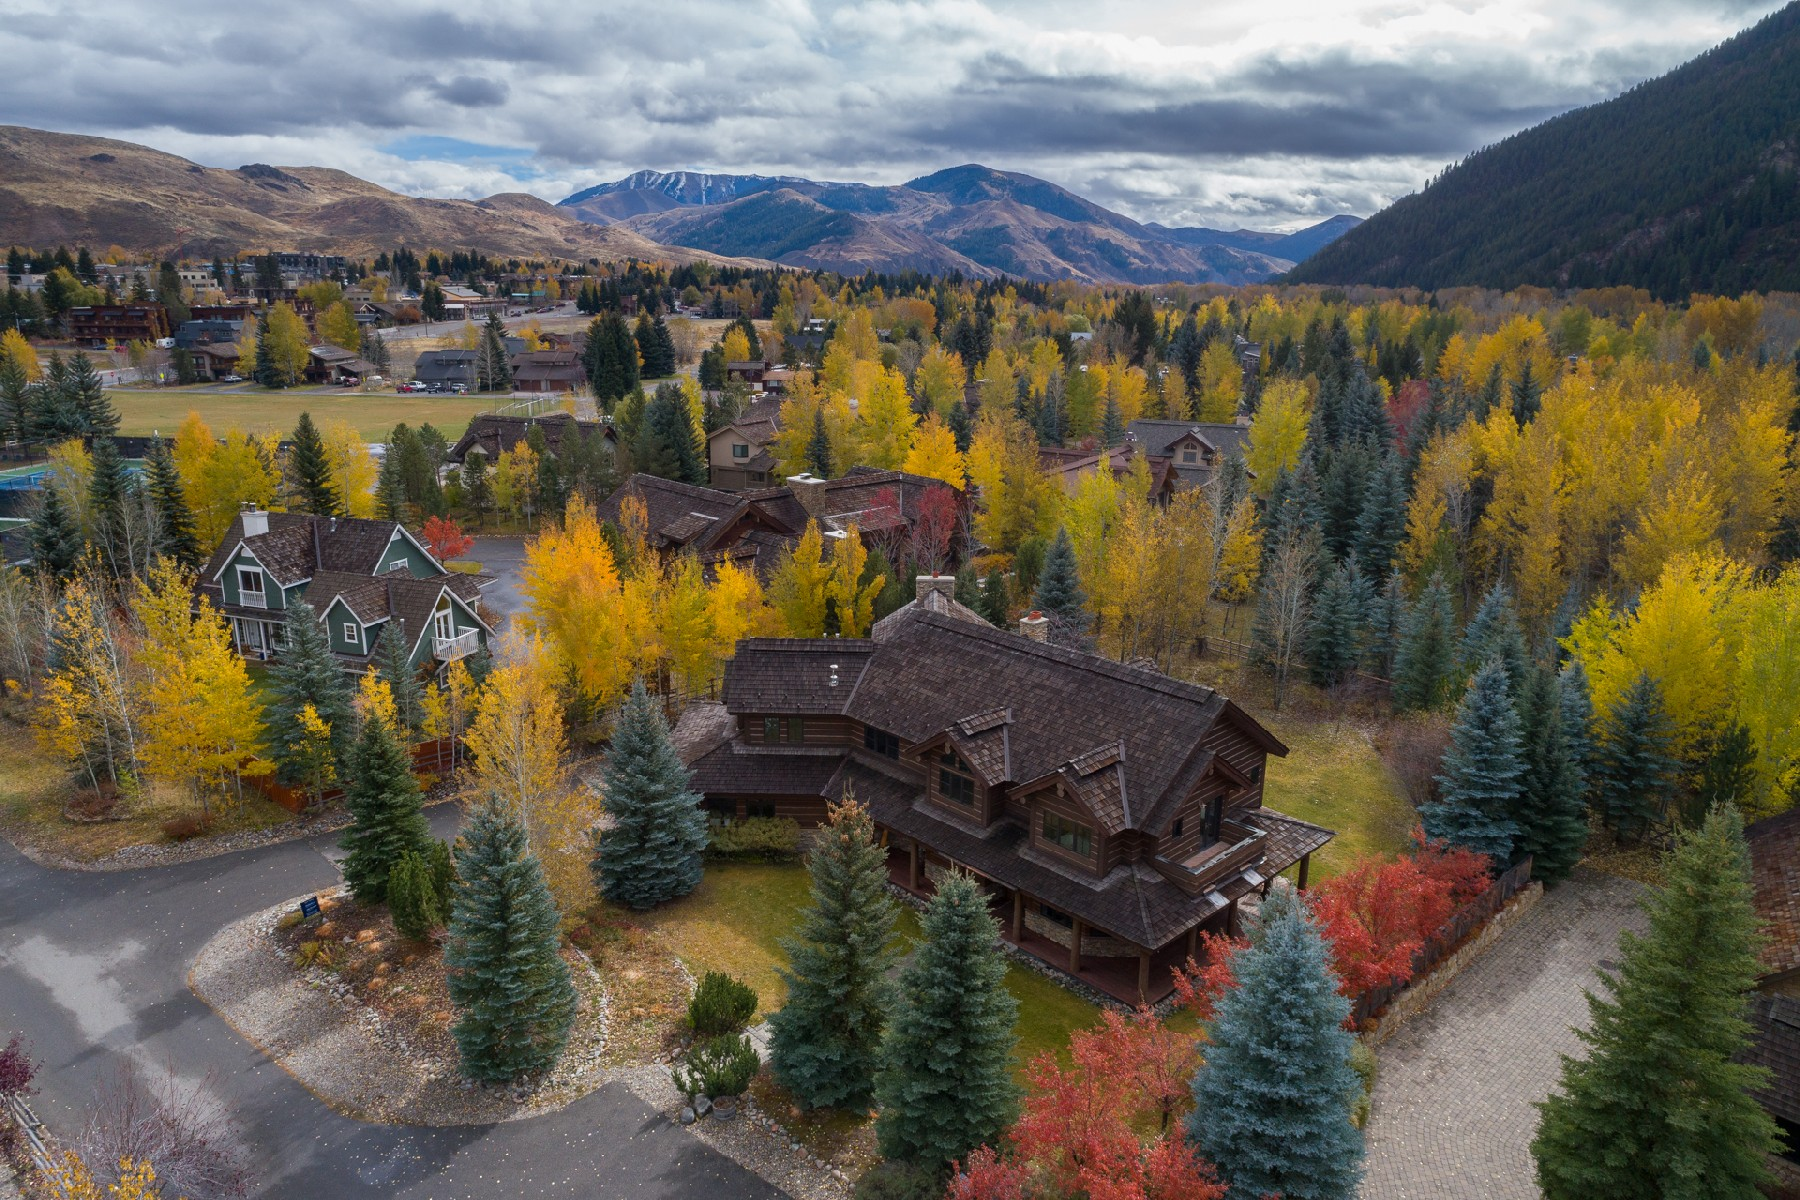 Casa Unifamiliar por un Venta en In Town Privacy 110 Bear Lane, Ketchum, Idaho, 83340 Estados Unidos